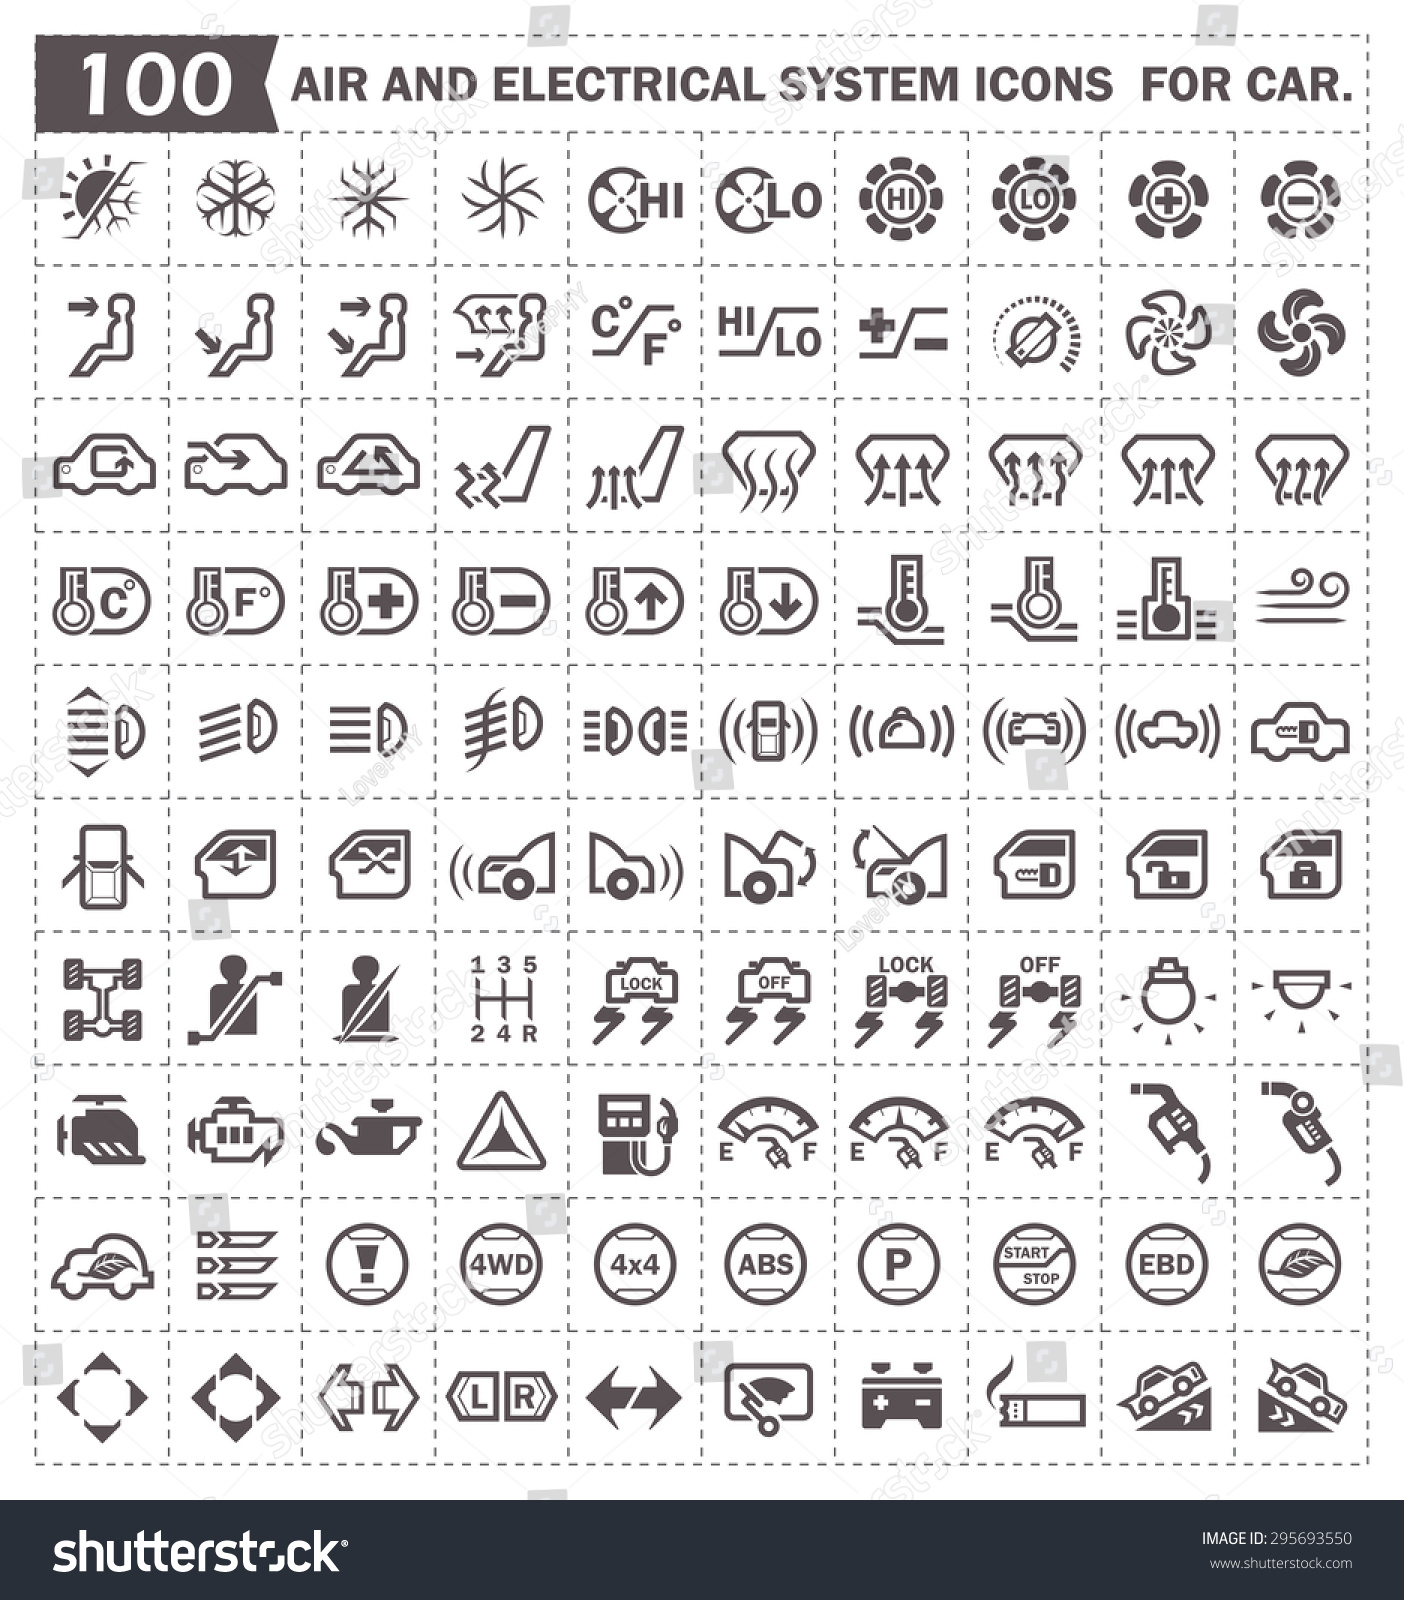 Stock Vector Car Dashboard And Air Conditioning System Vector Icon Sets